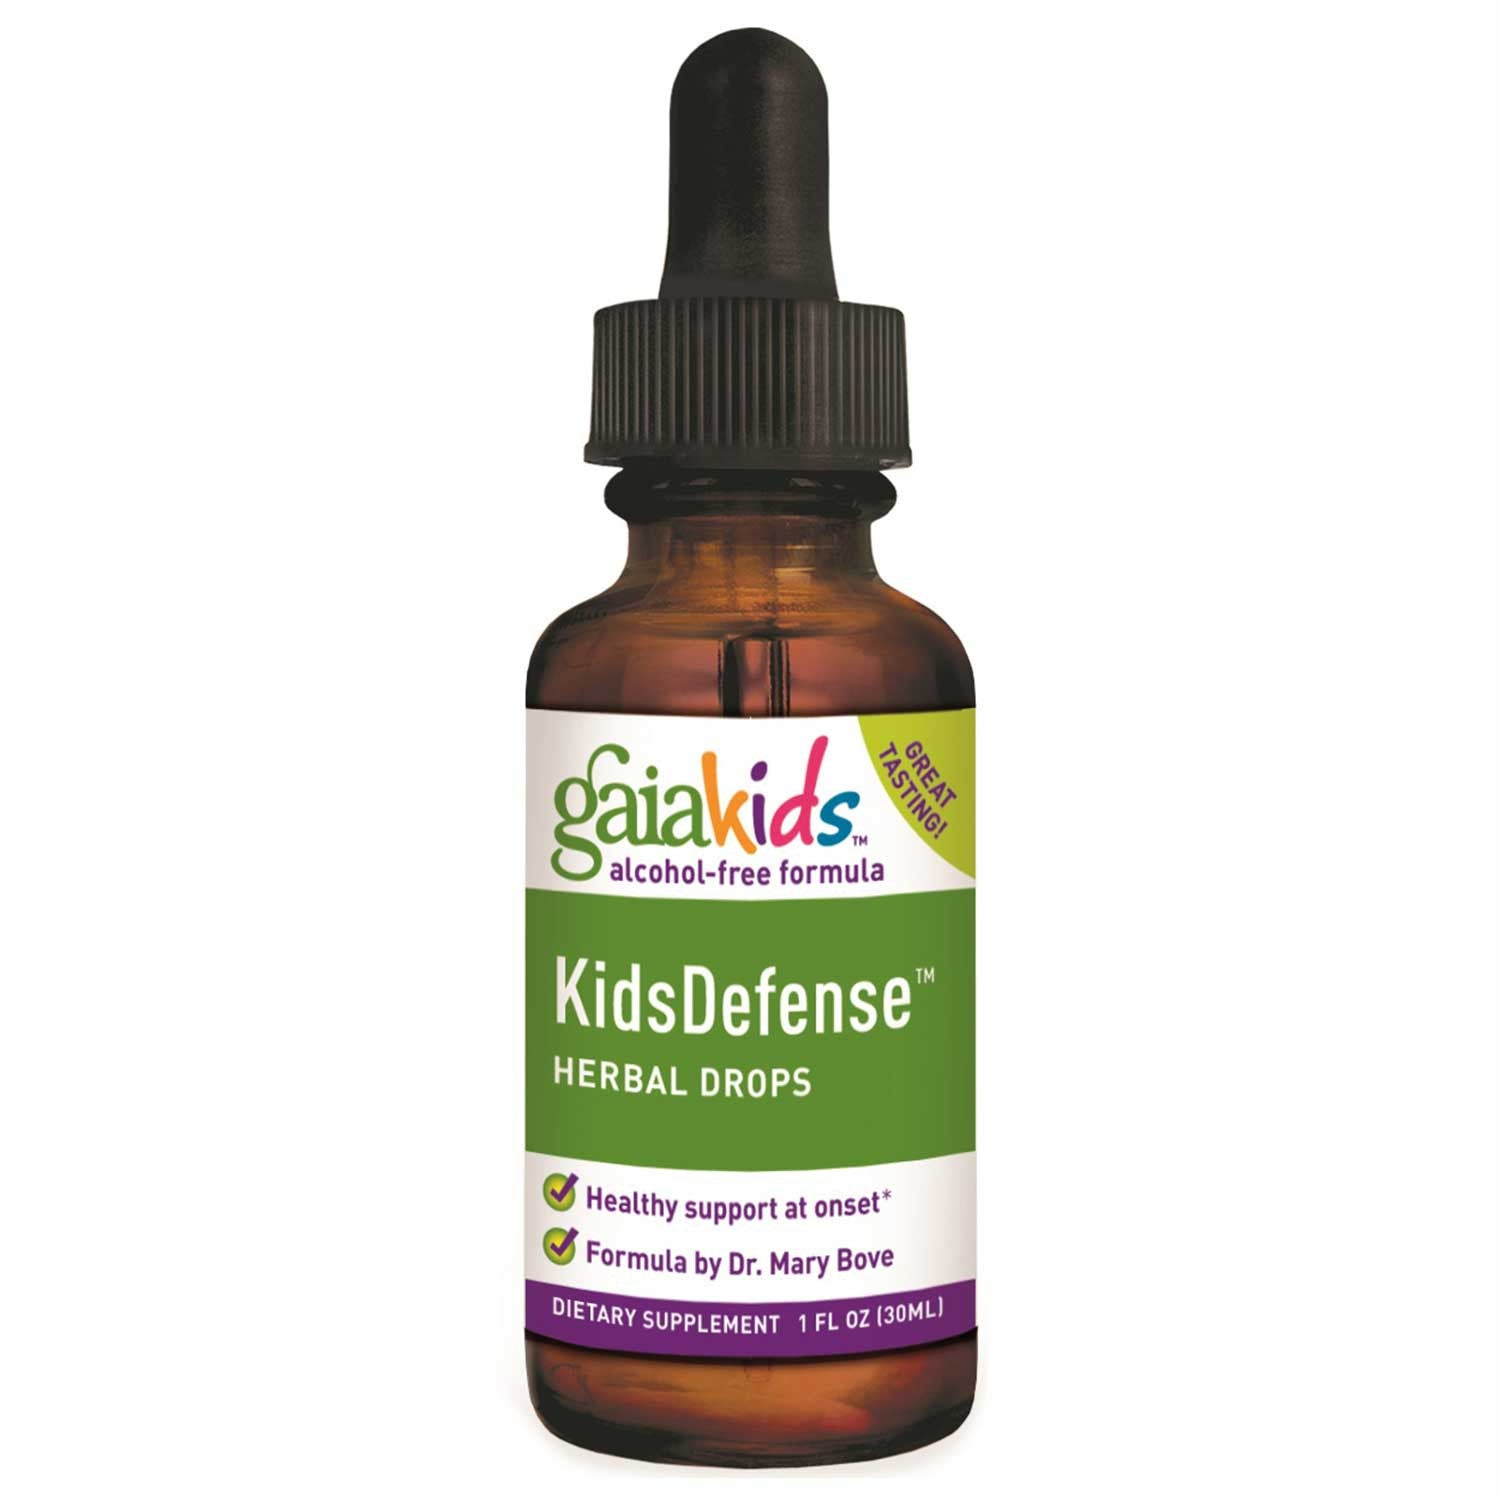 Gaia Kids KidsDefense Herbal Drops, 30 ml.-NaturesWisdom